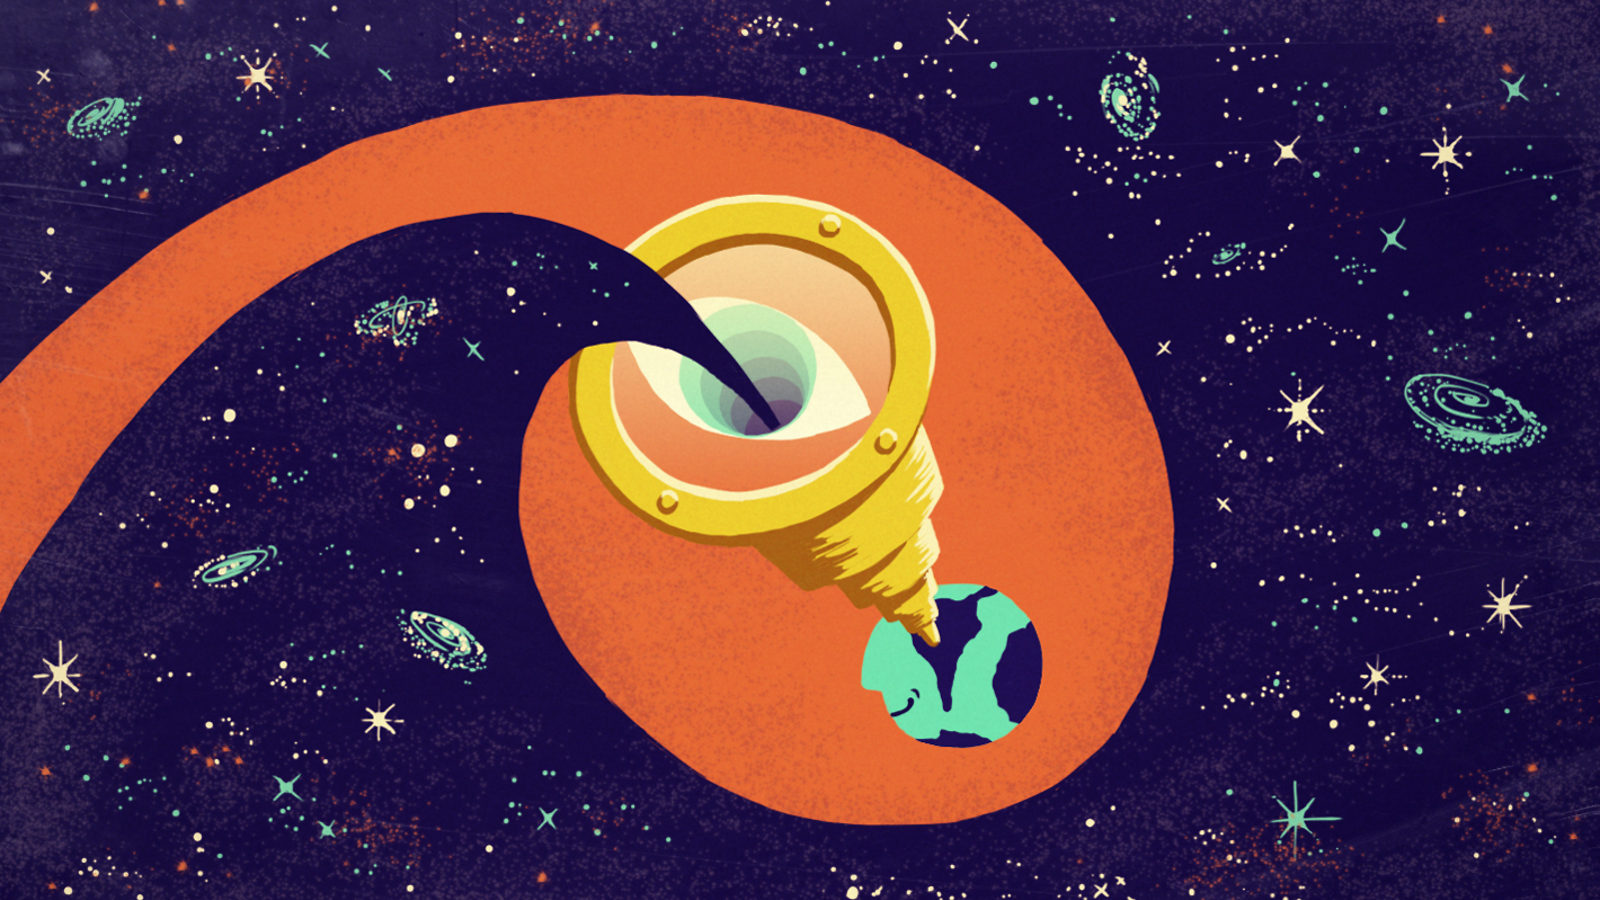 Illustration purple space, sea-foam green galaxies, planet in center, yellow telescope coming out of orange circle eye inside